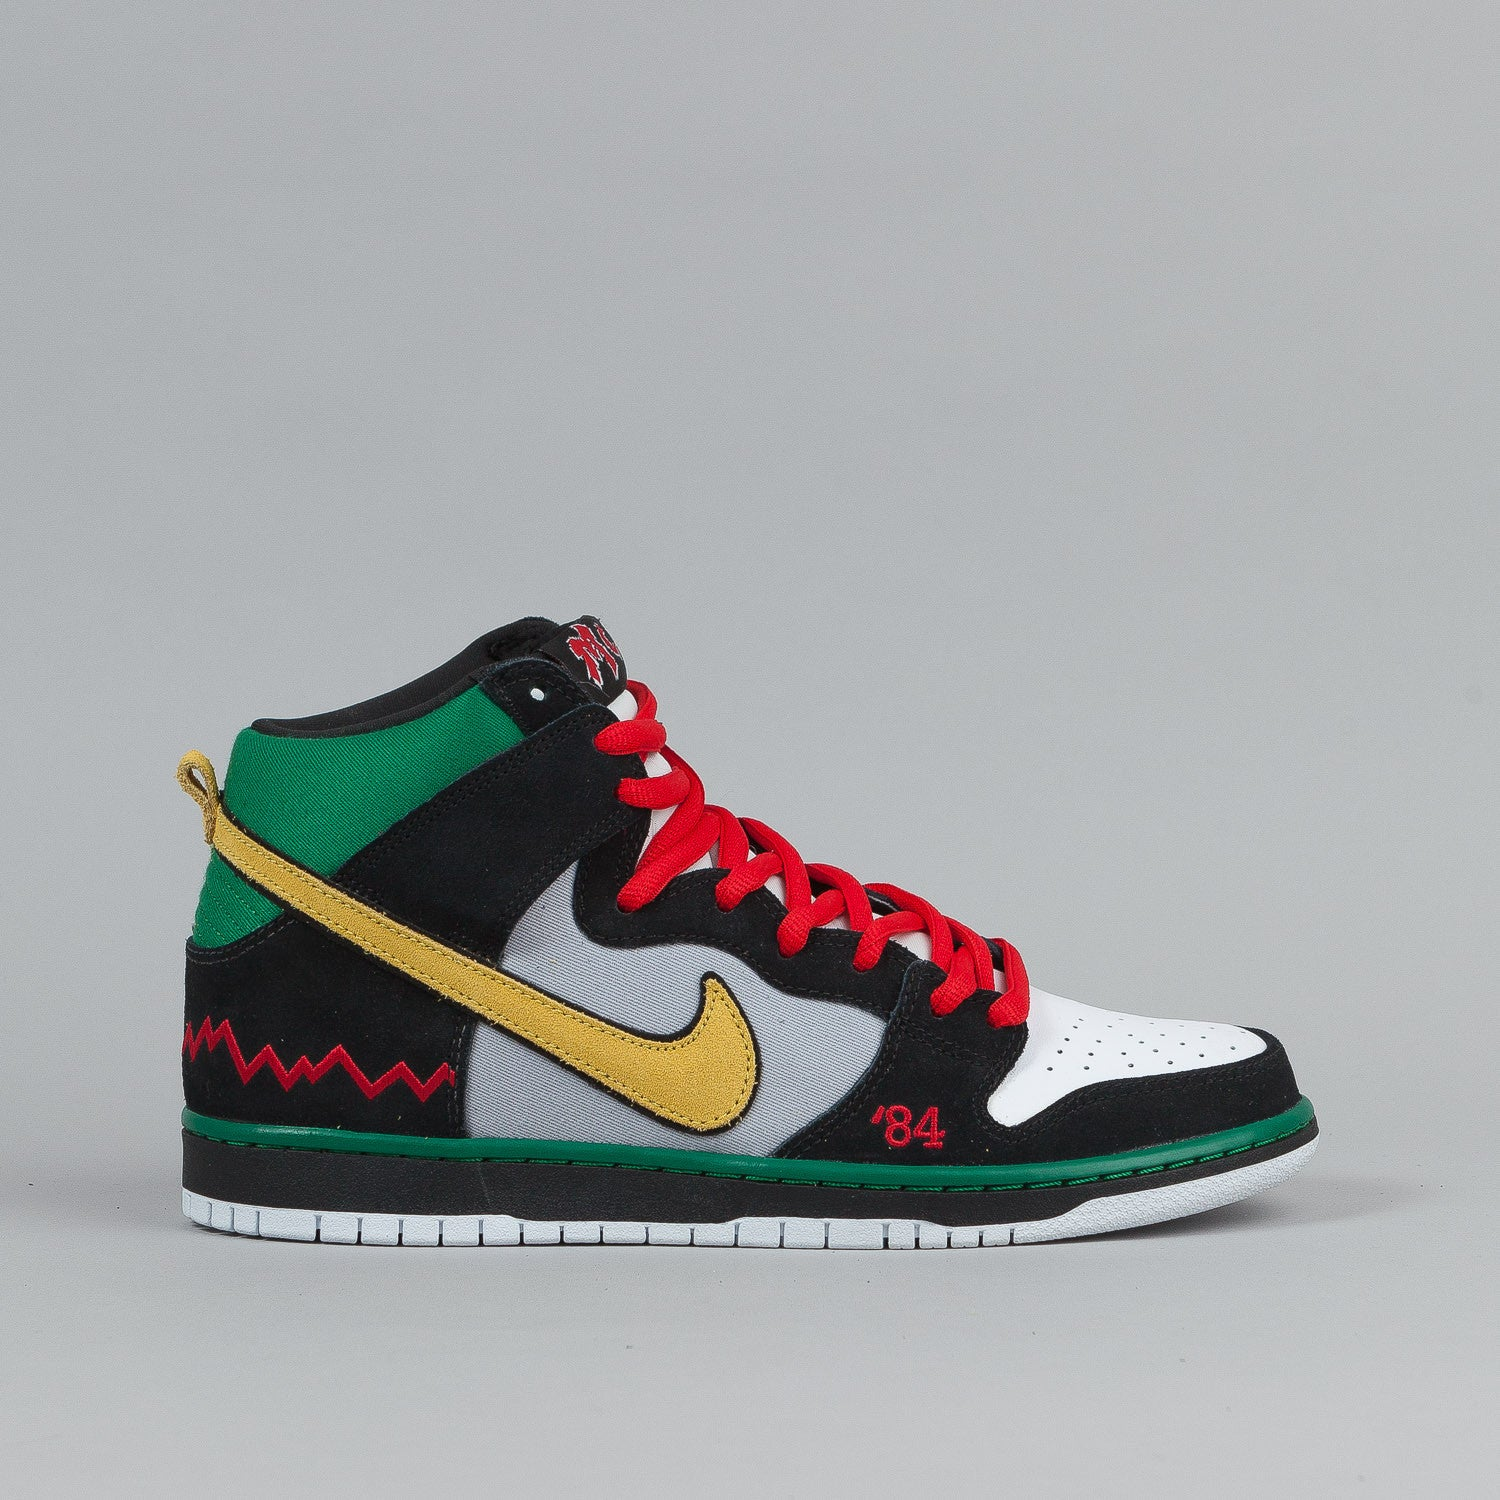 Nike SB Dunk High Pro Premium Shoes